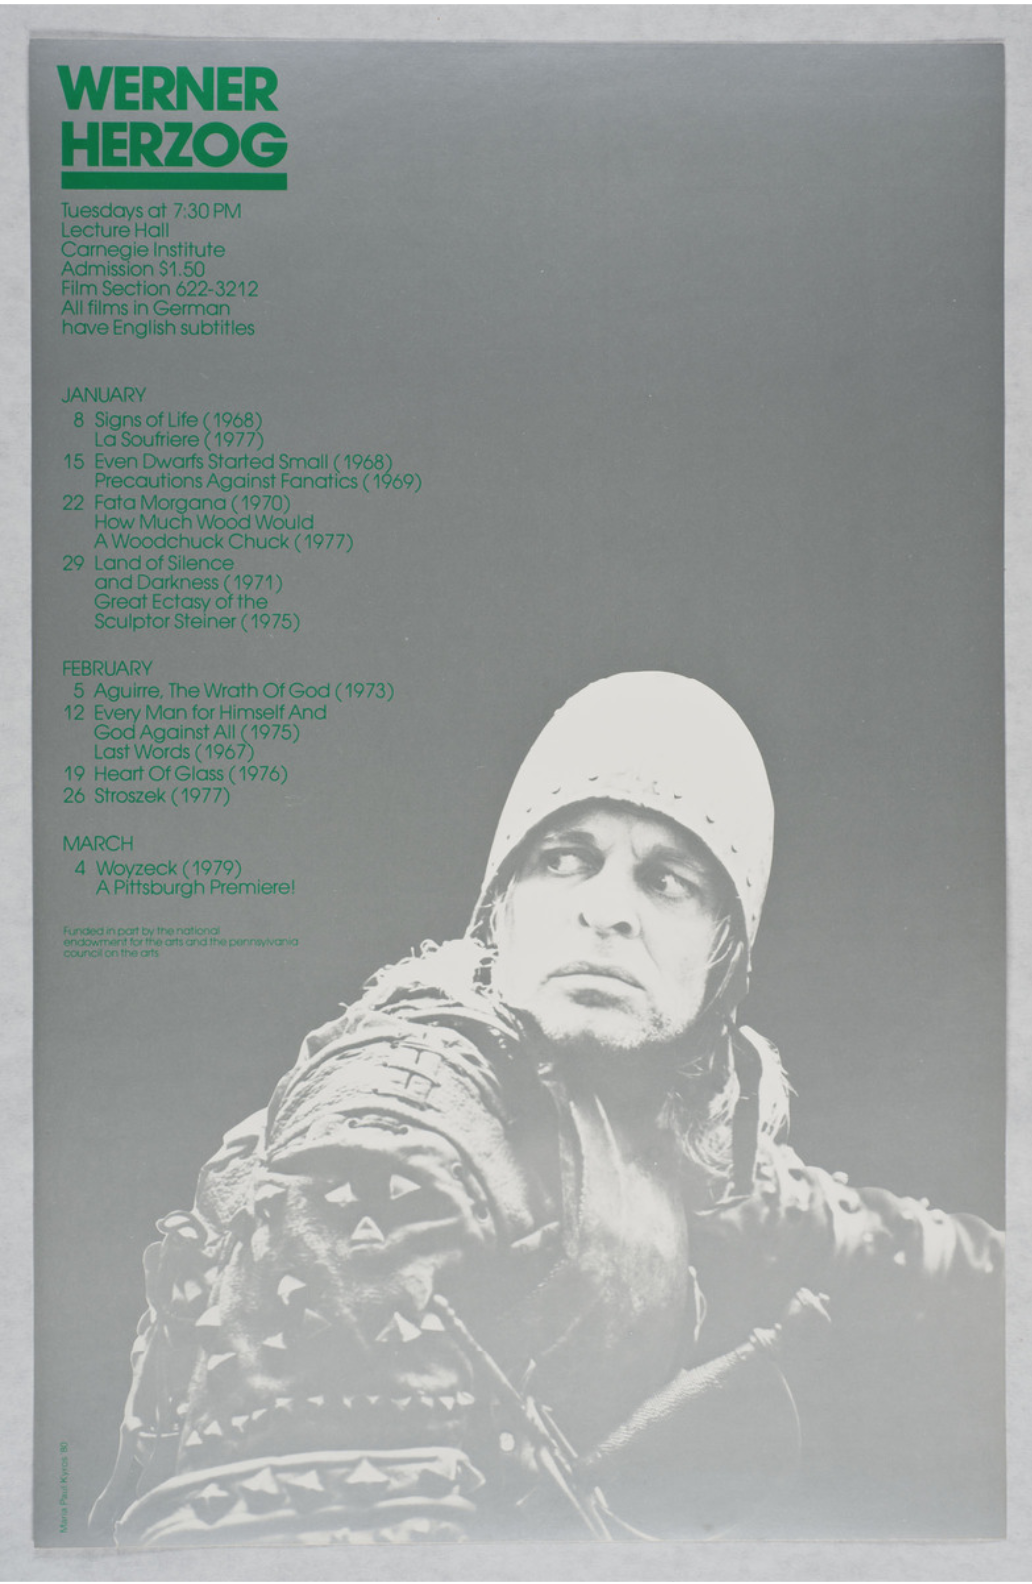 Maria Kyros Menniti. Poster for Werner Herzog at Carnegie Lecture Hall, January - March 1980. Carnegie Museum of Art, the Film and Video Department Records Page. Link:    http://records.cmoa.org/things/7f86b7ff-6459-4807-a802-21bb8ef7859d/